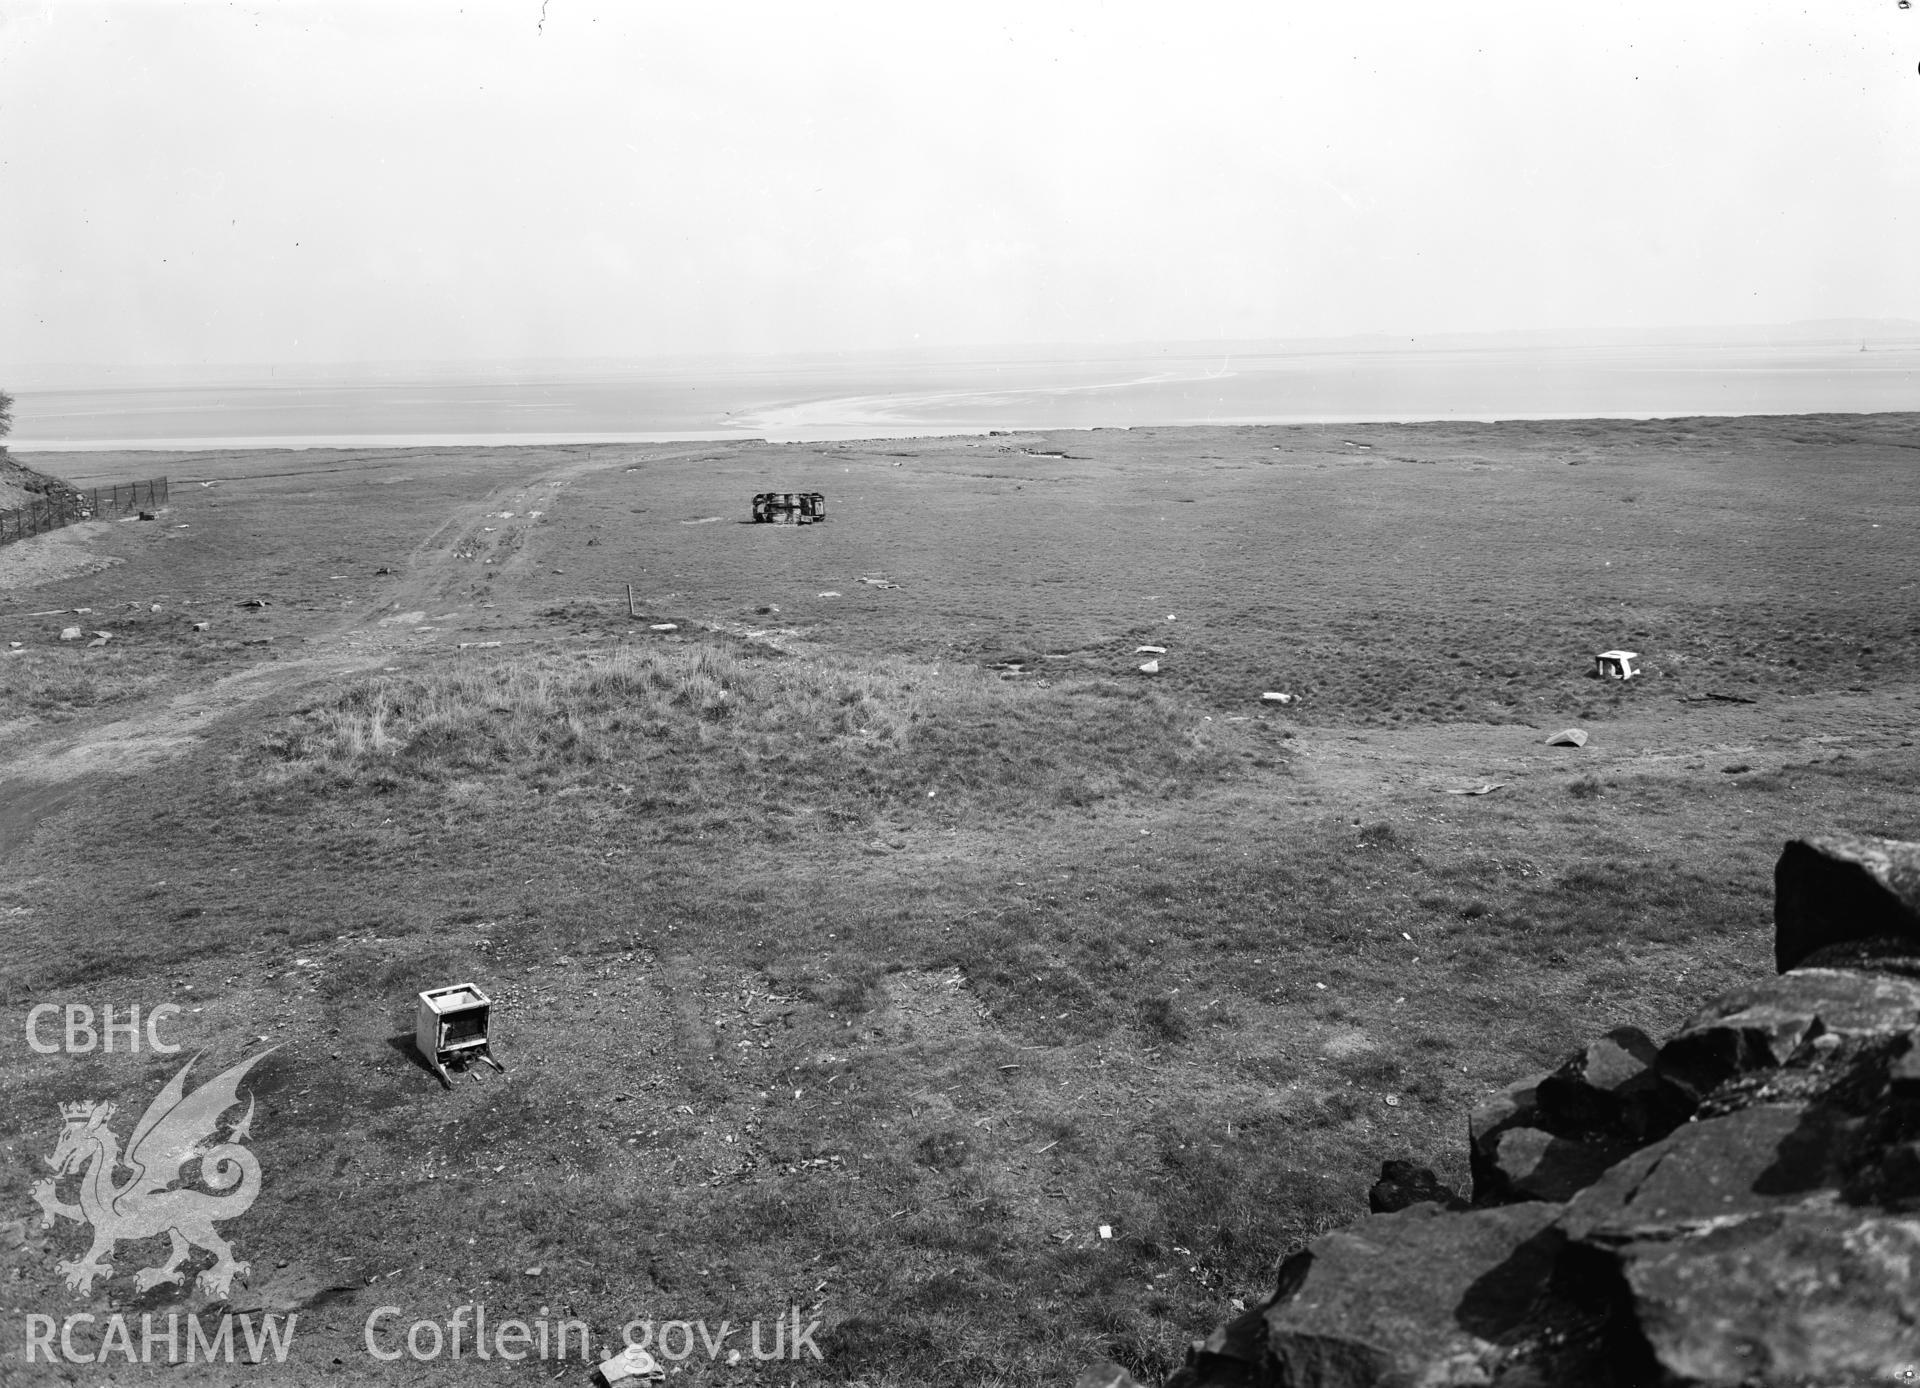 D.O.E photograph of Flint Gaol - view over saltings looking north towards the Dee Estuary. In castle outer ward (since removed).